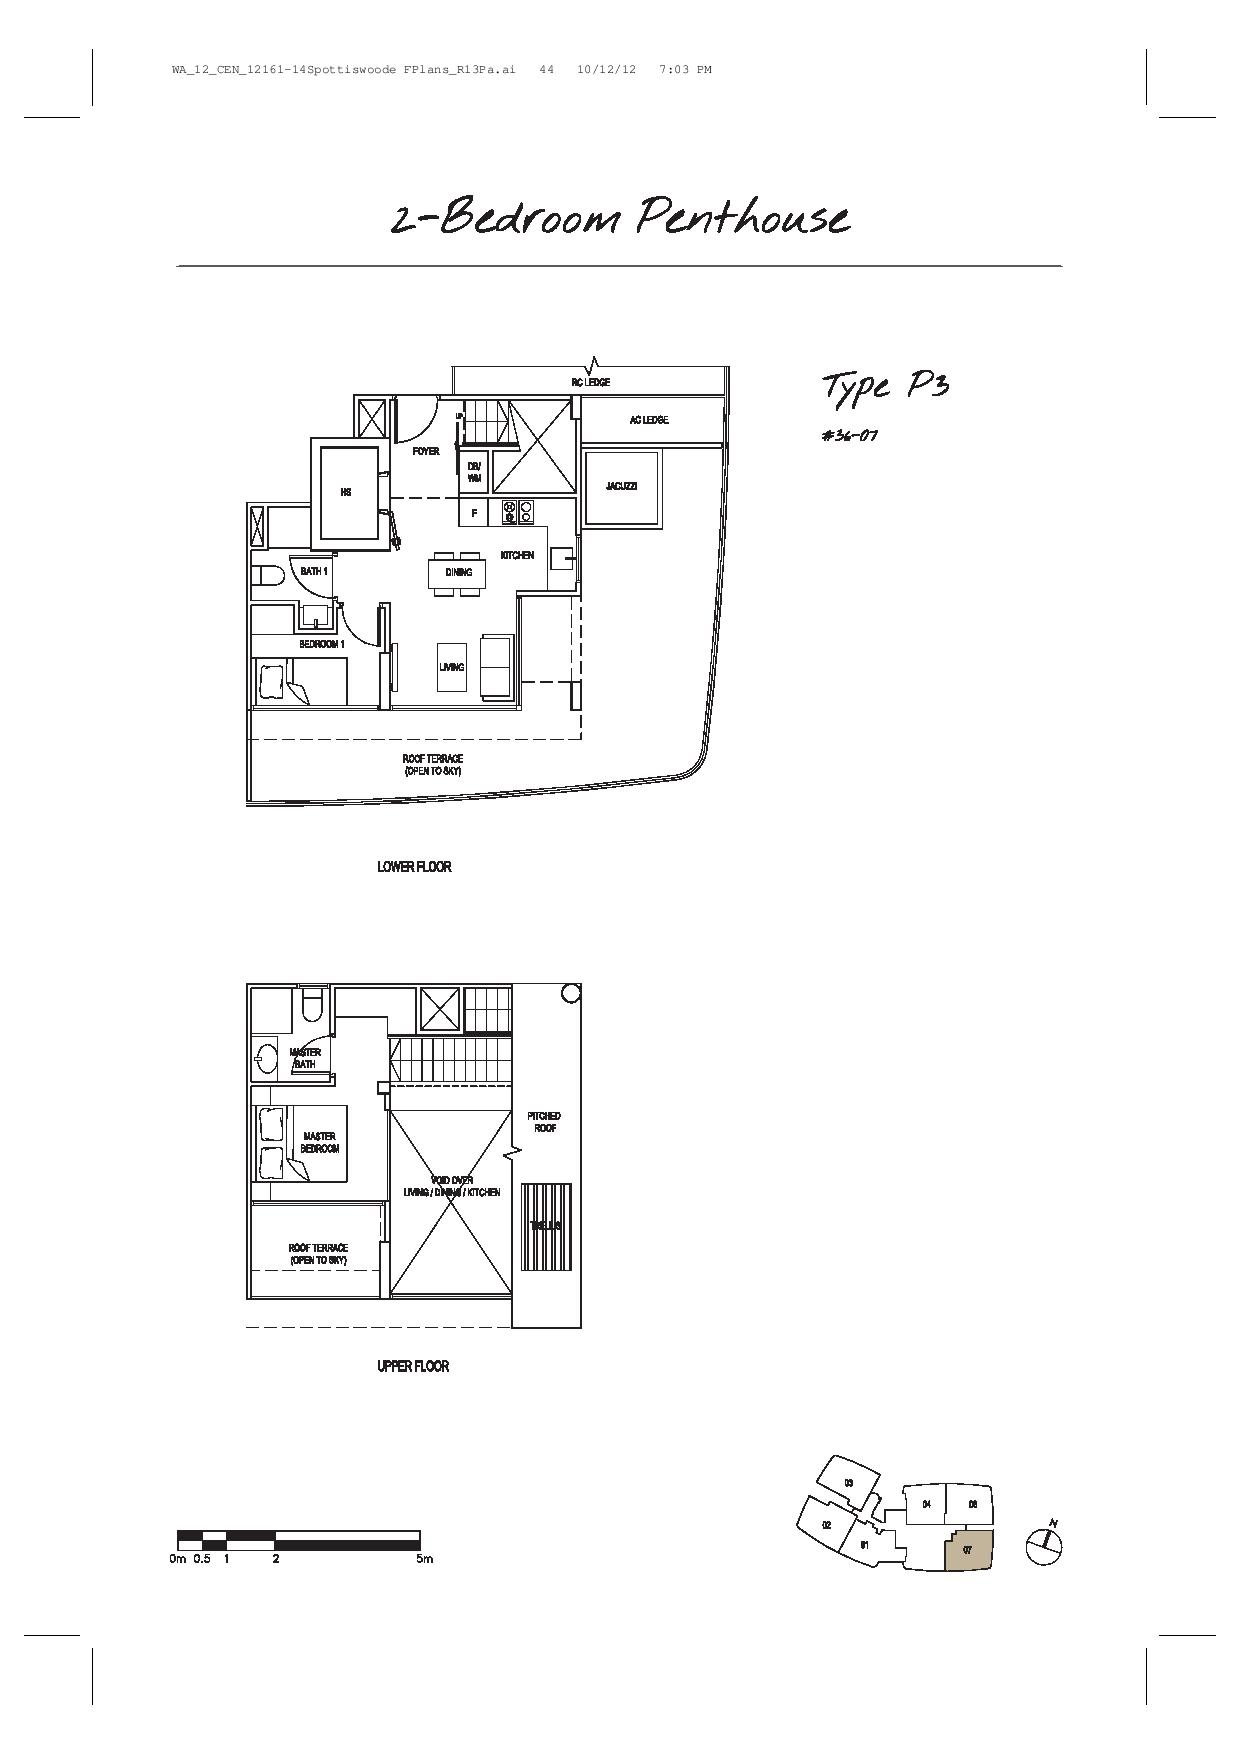 Spottiswoode Suites 2 Bedroom Penthouse Type P3 Floor Plans